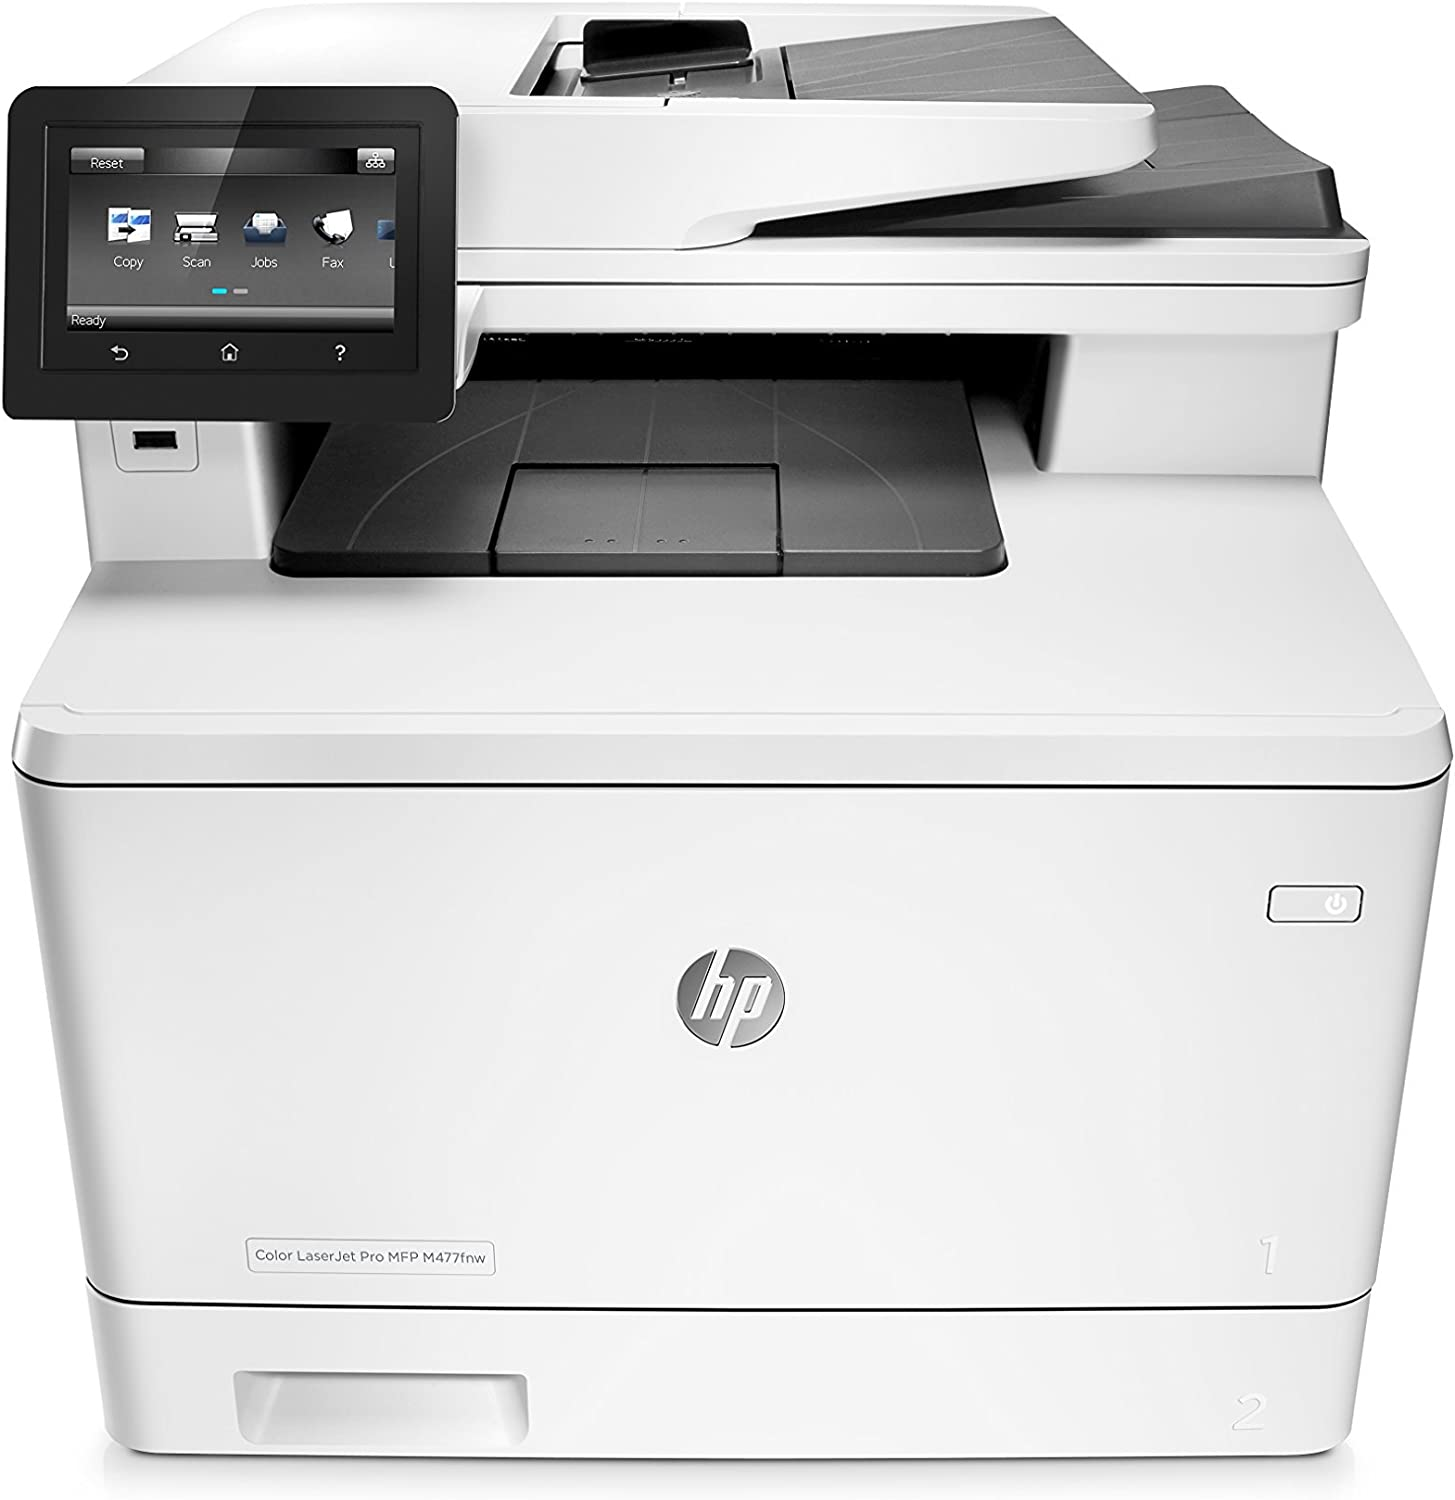 HP Laserjet Pro M477fnw Multifunction Wireless Color Laser Printer with Built-in Ethernet (CF377A) (Renewed)